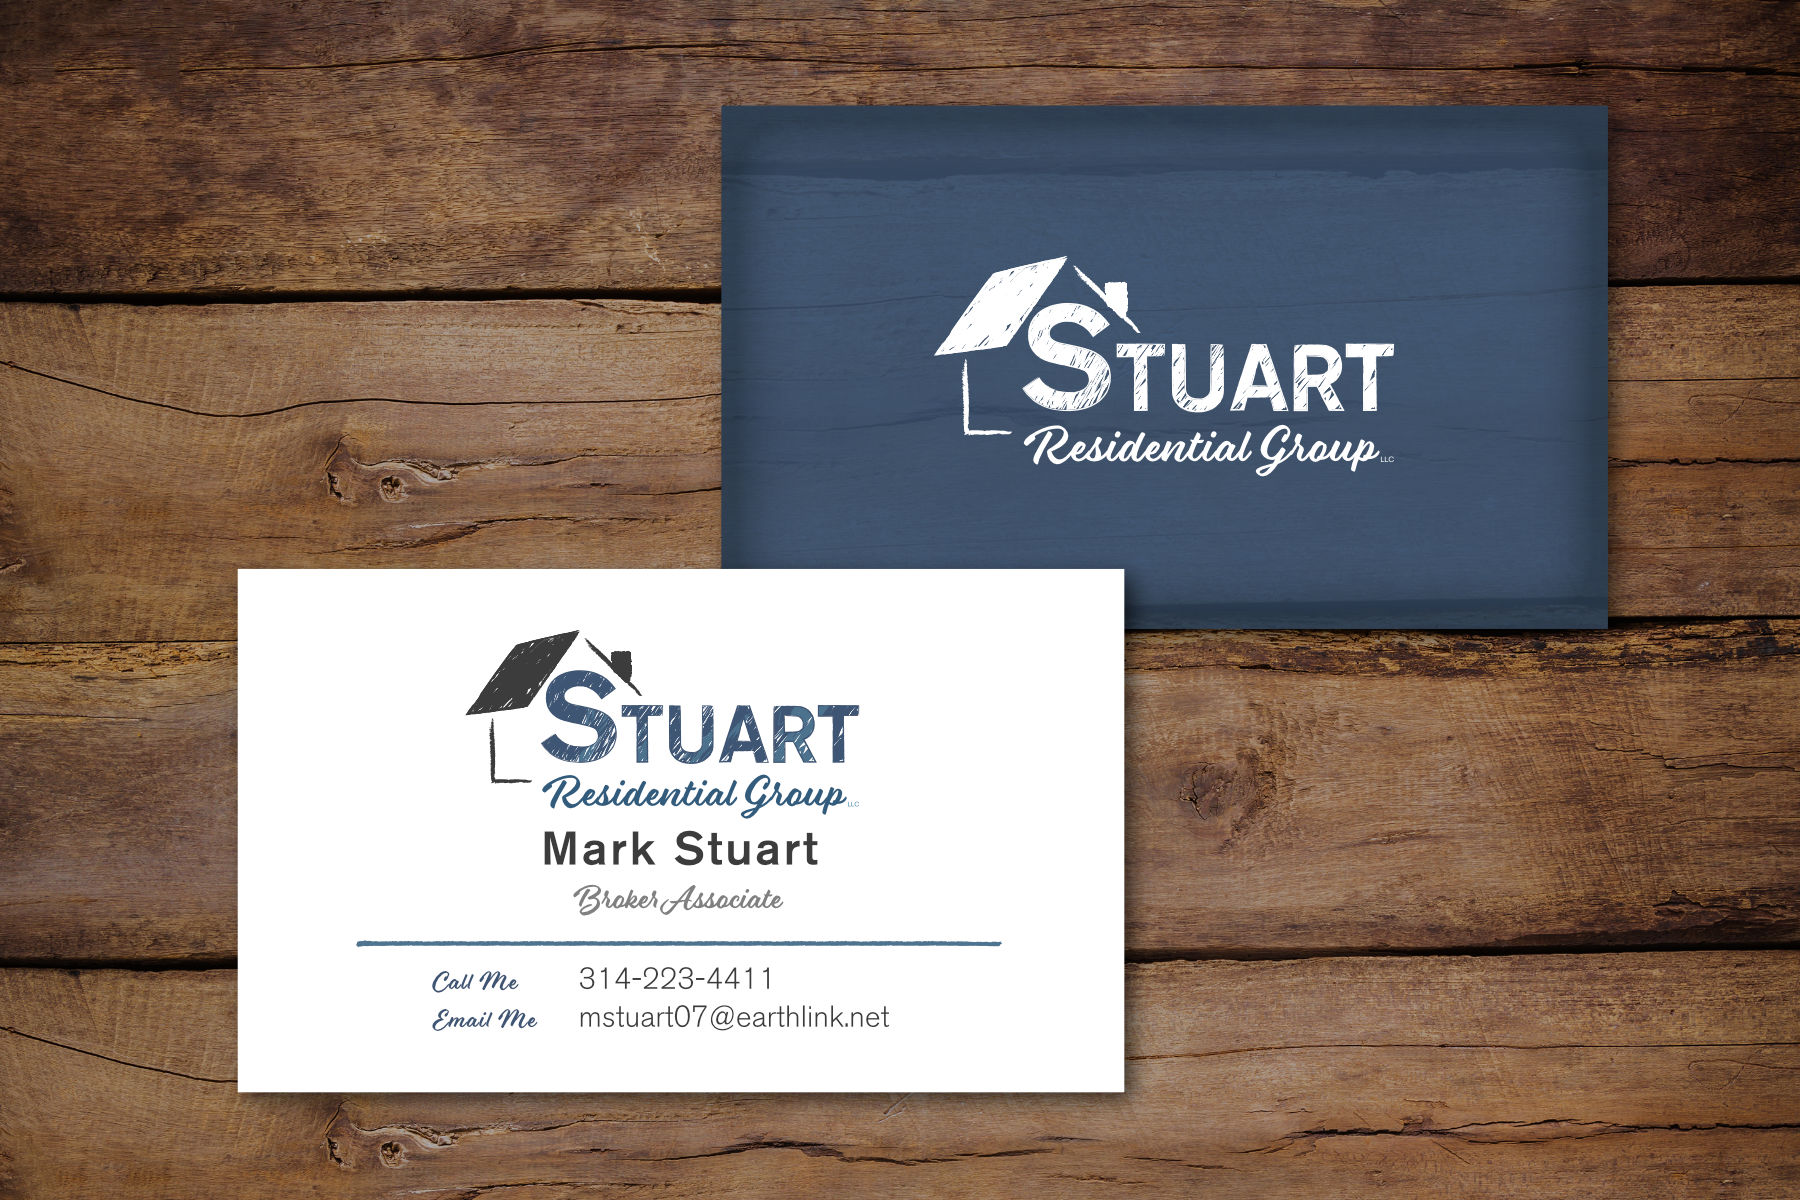 stuart-residential-group-business-card-mockup